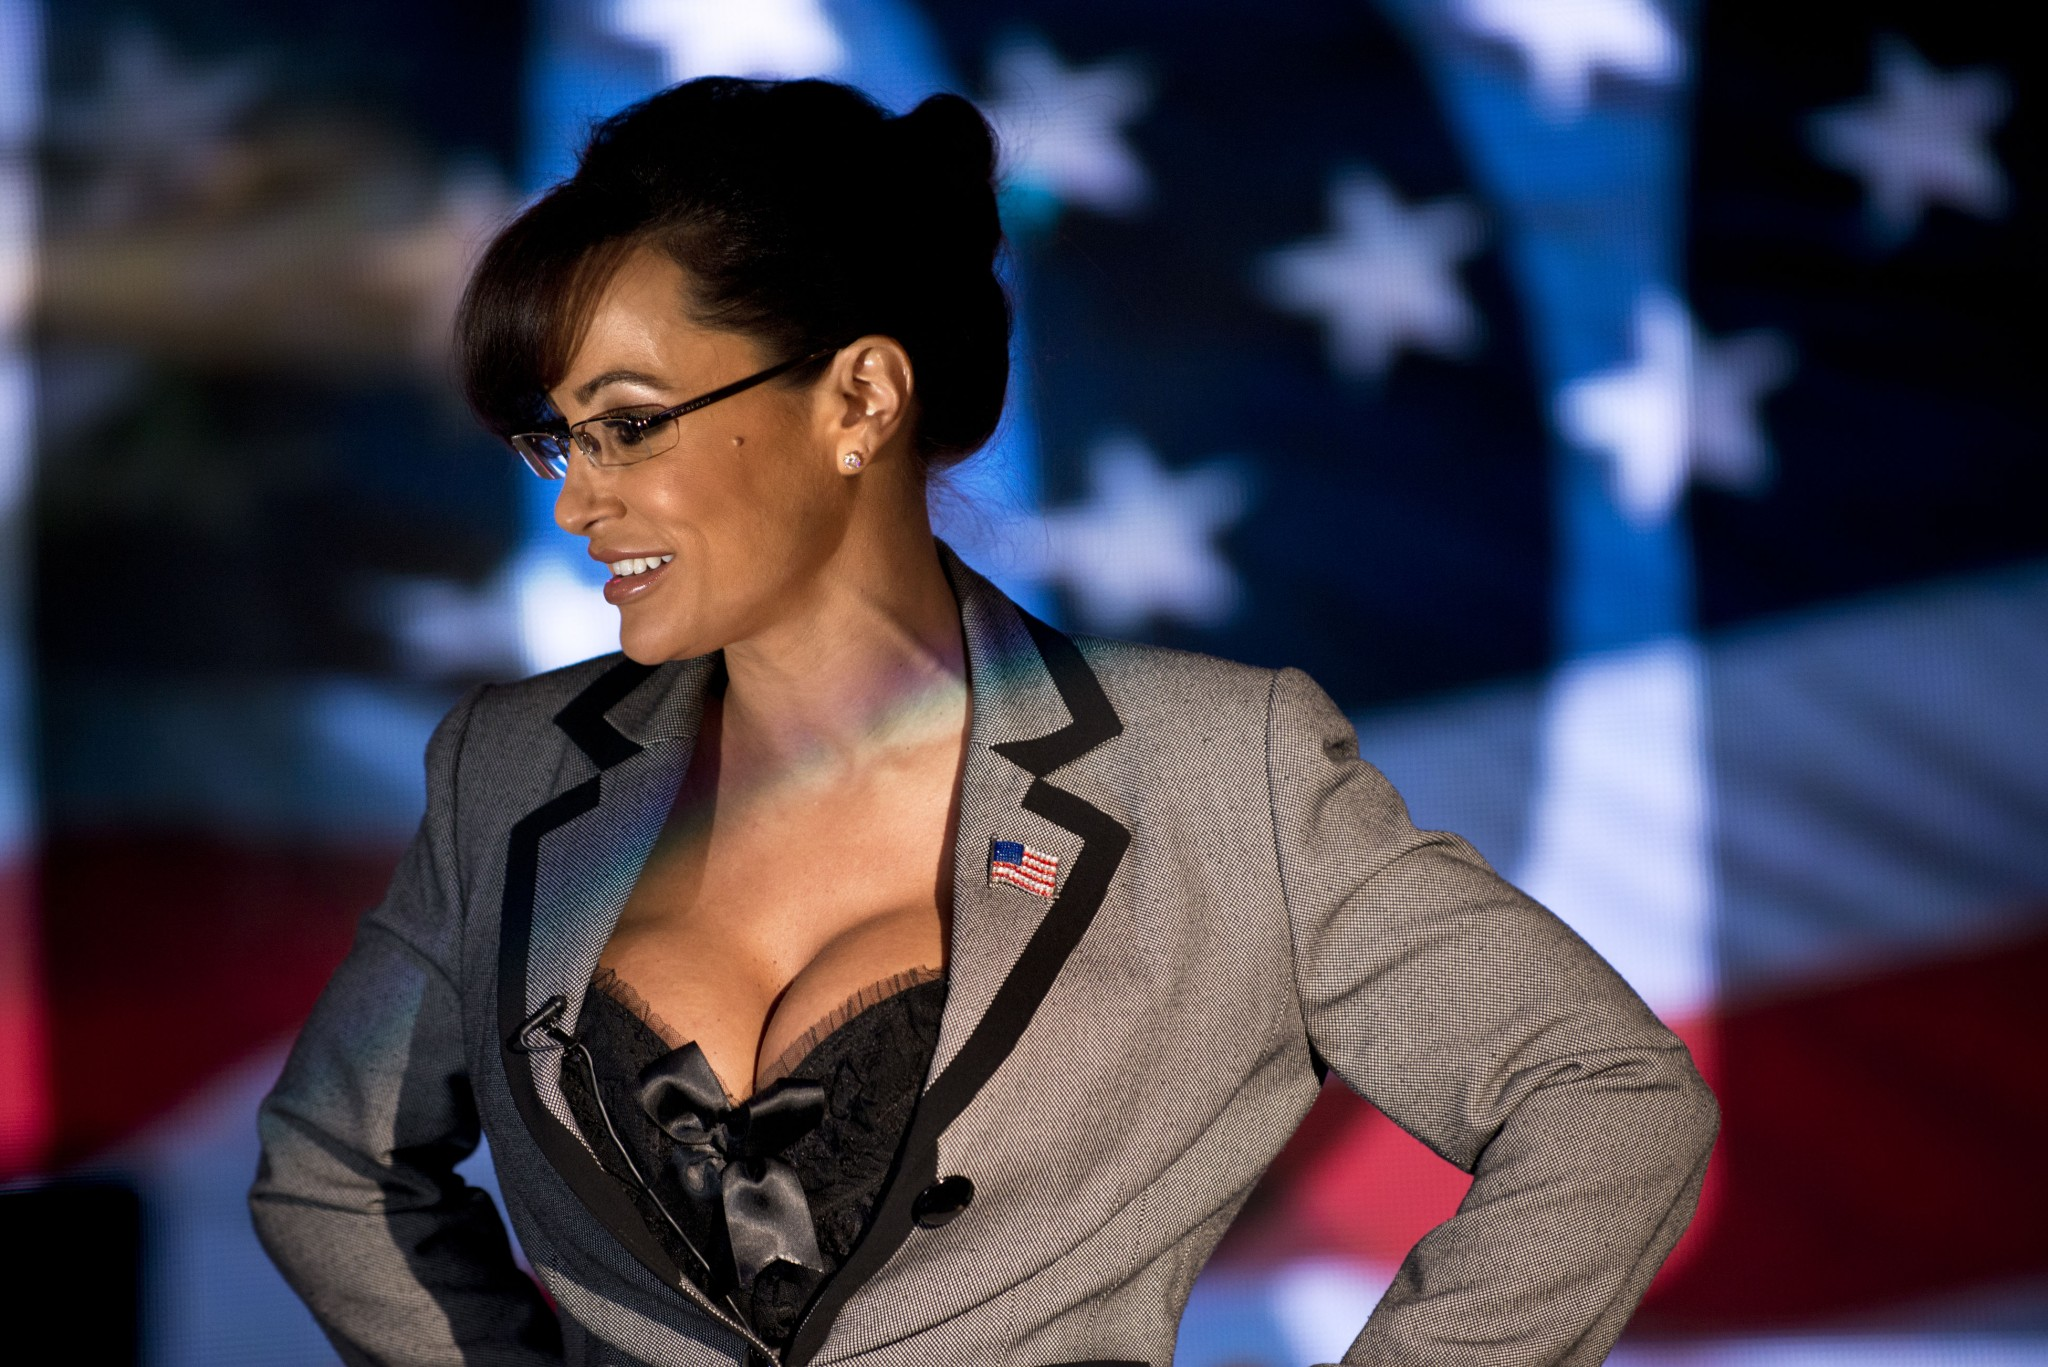 Sarah Palin The Porn Star 15